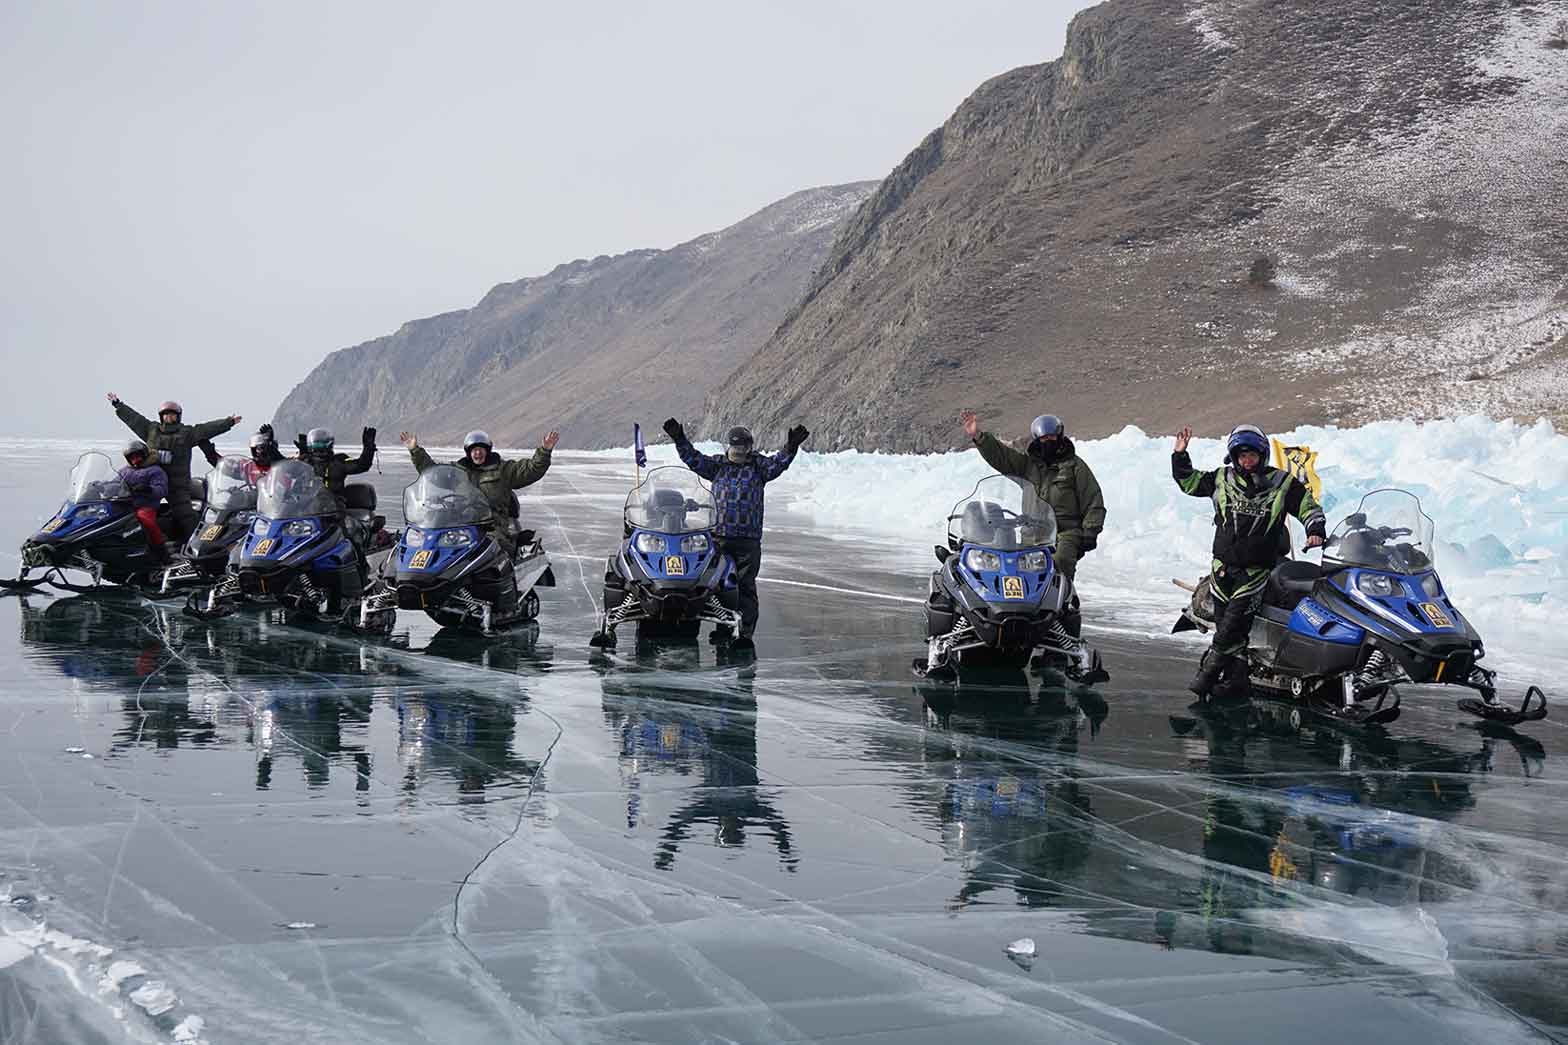 Group on the ice